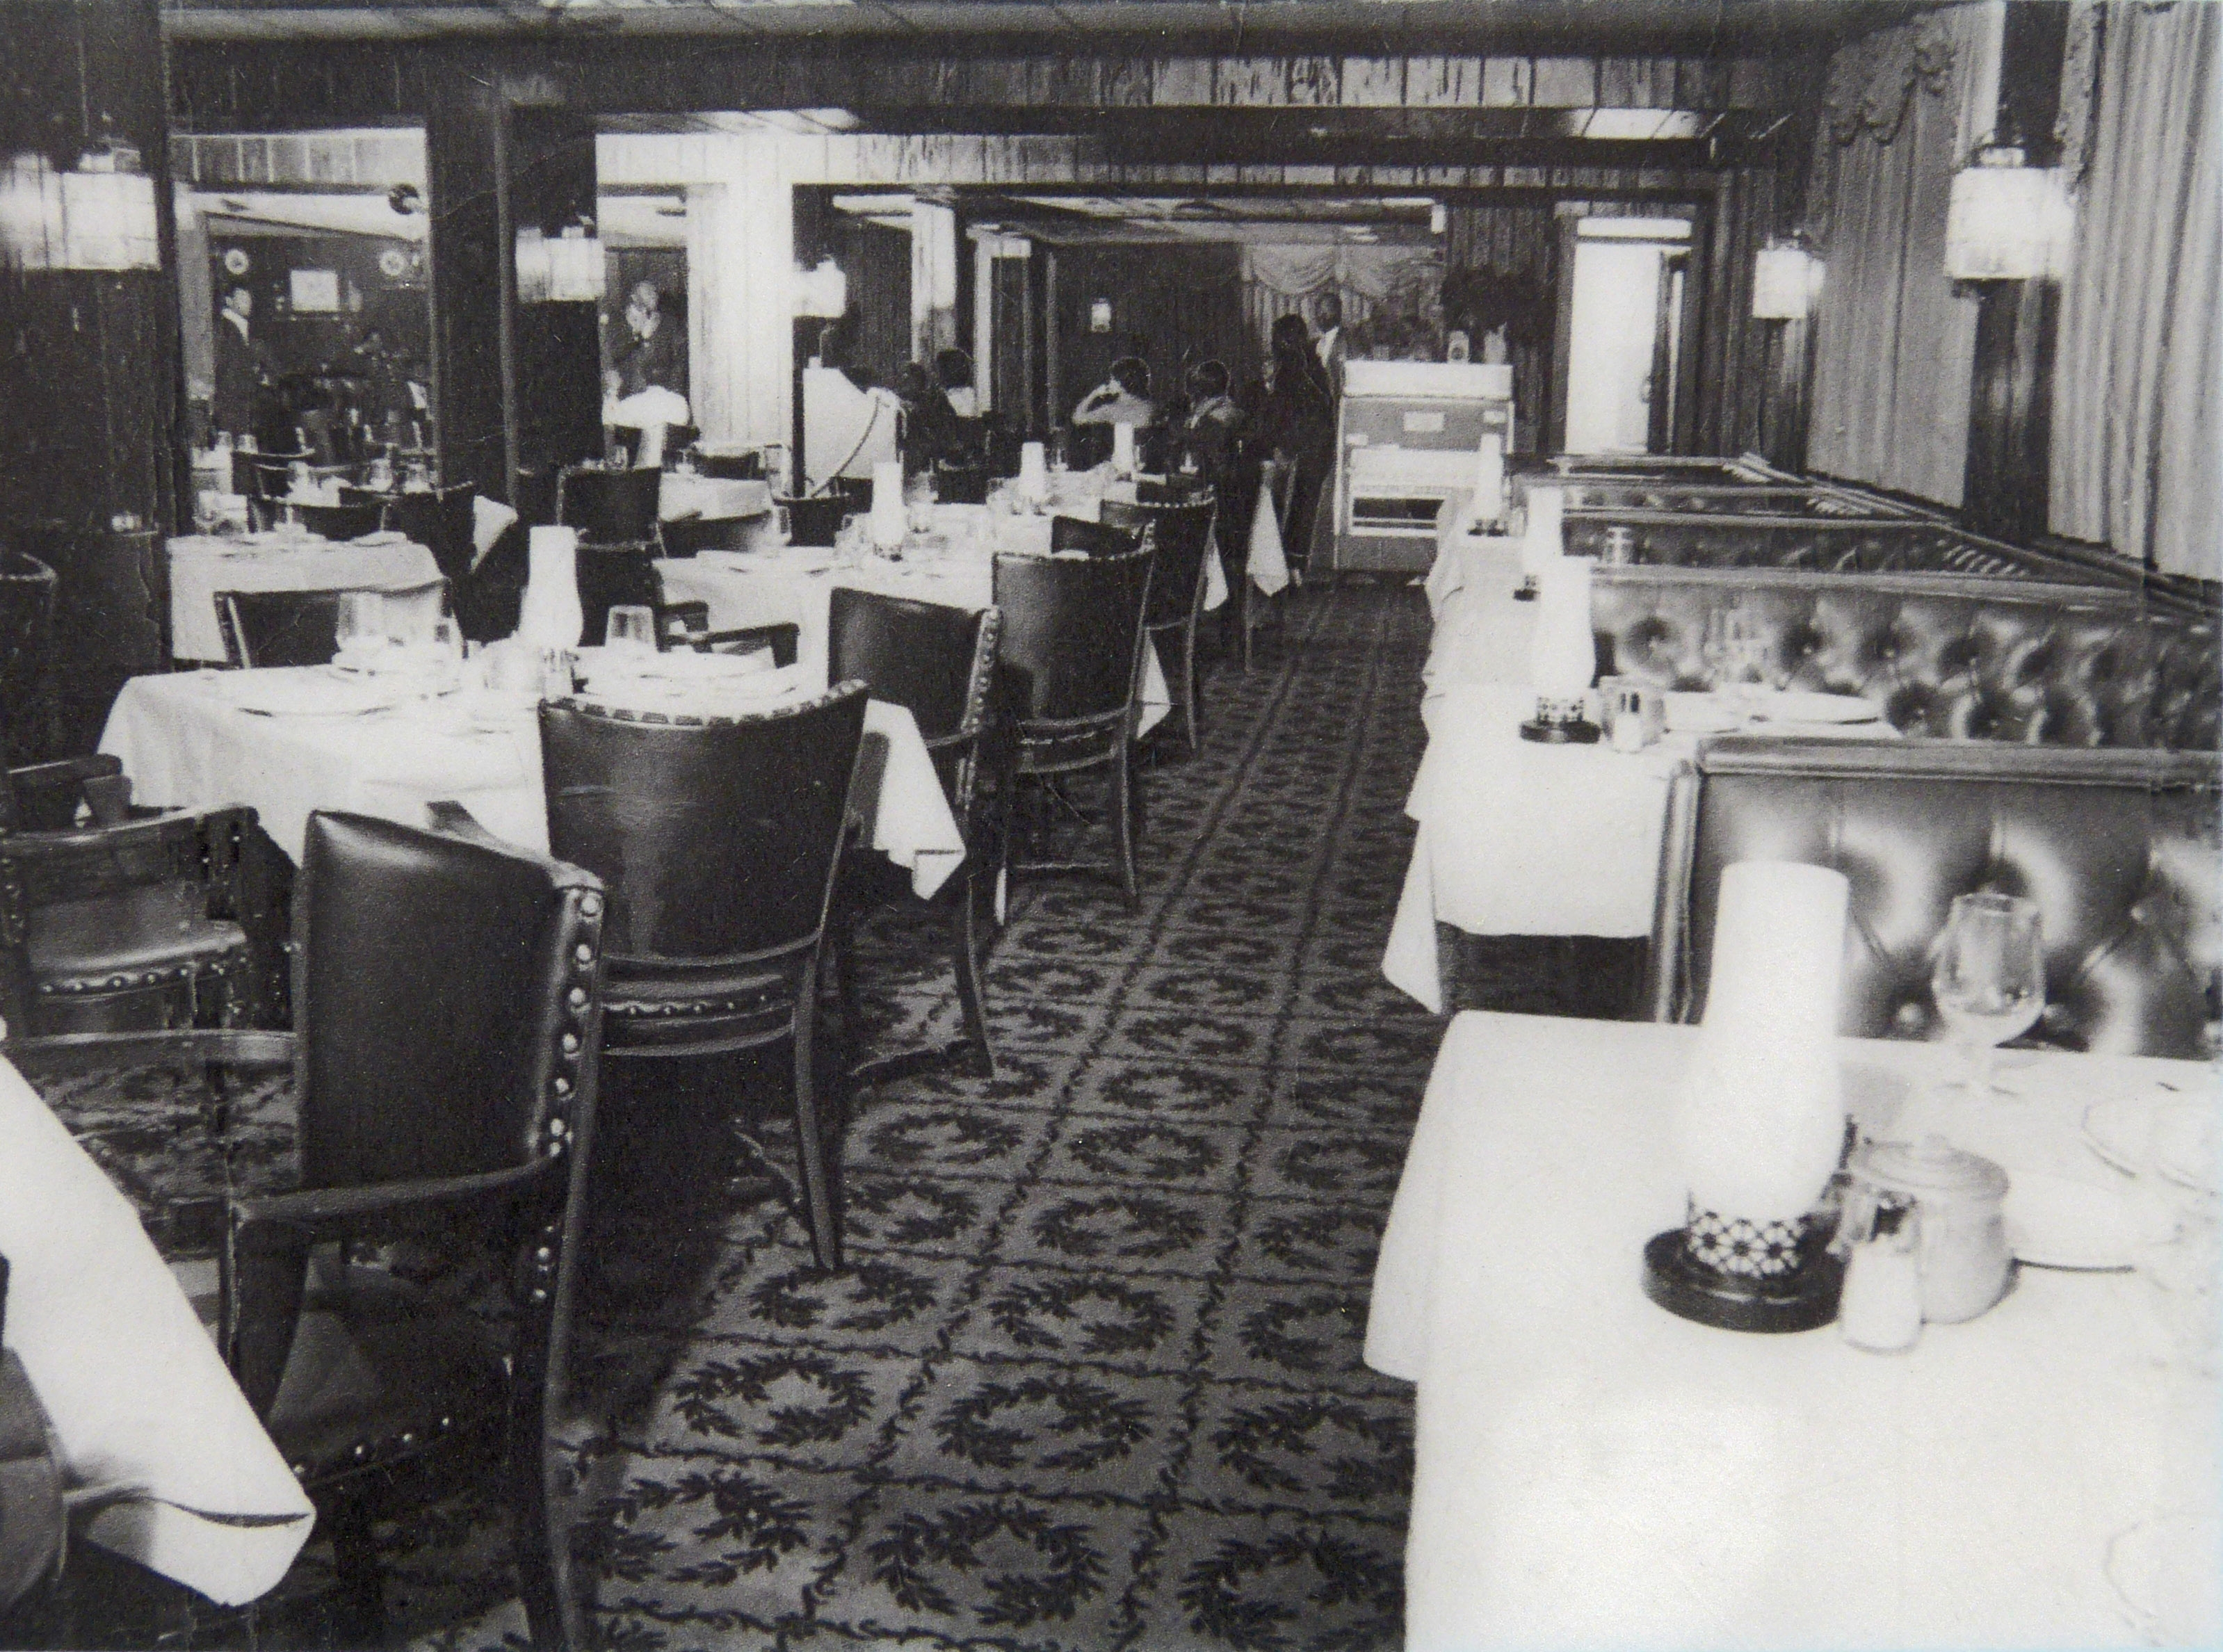 The Red Carpet Lounge in its heyday